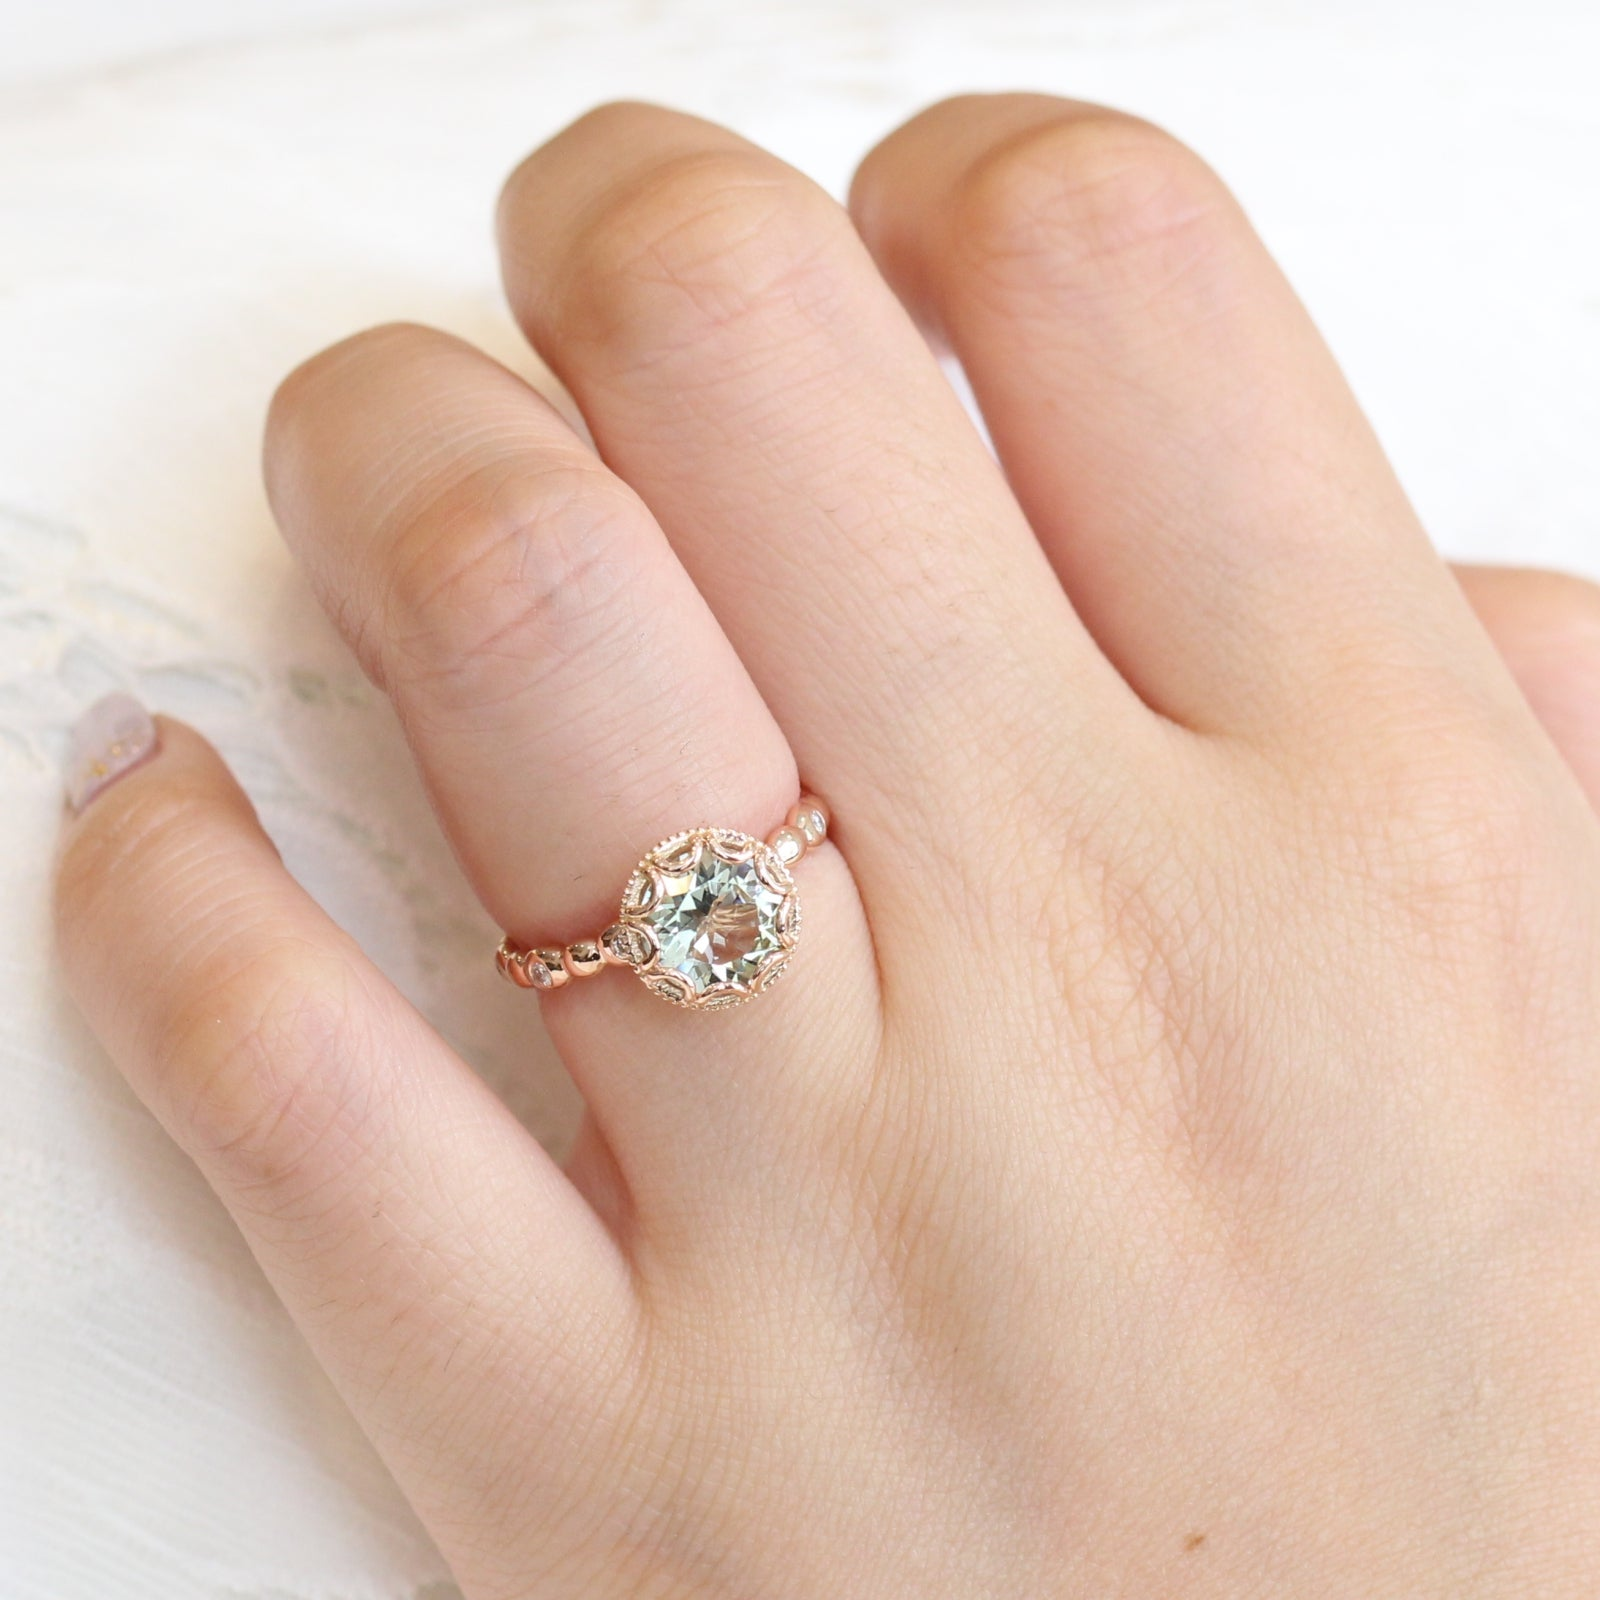 f1a598e253e11 Floral Solitaire Ring in Pebble Band w/ 8mm Green Amethyst and Diamond